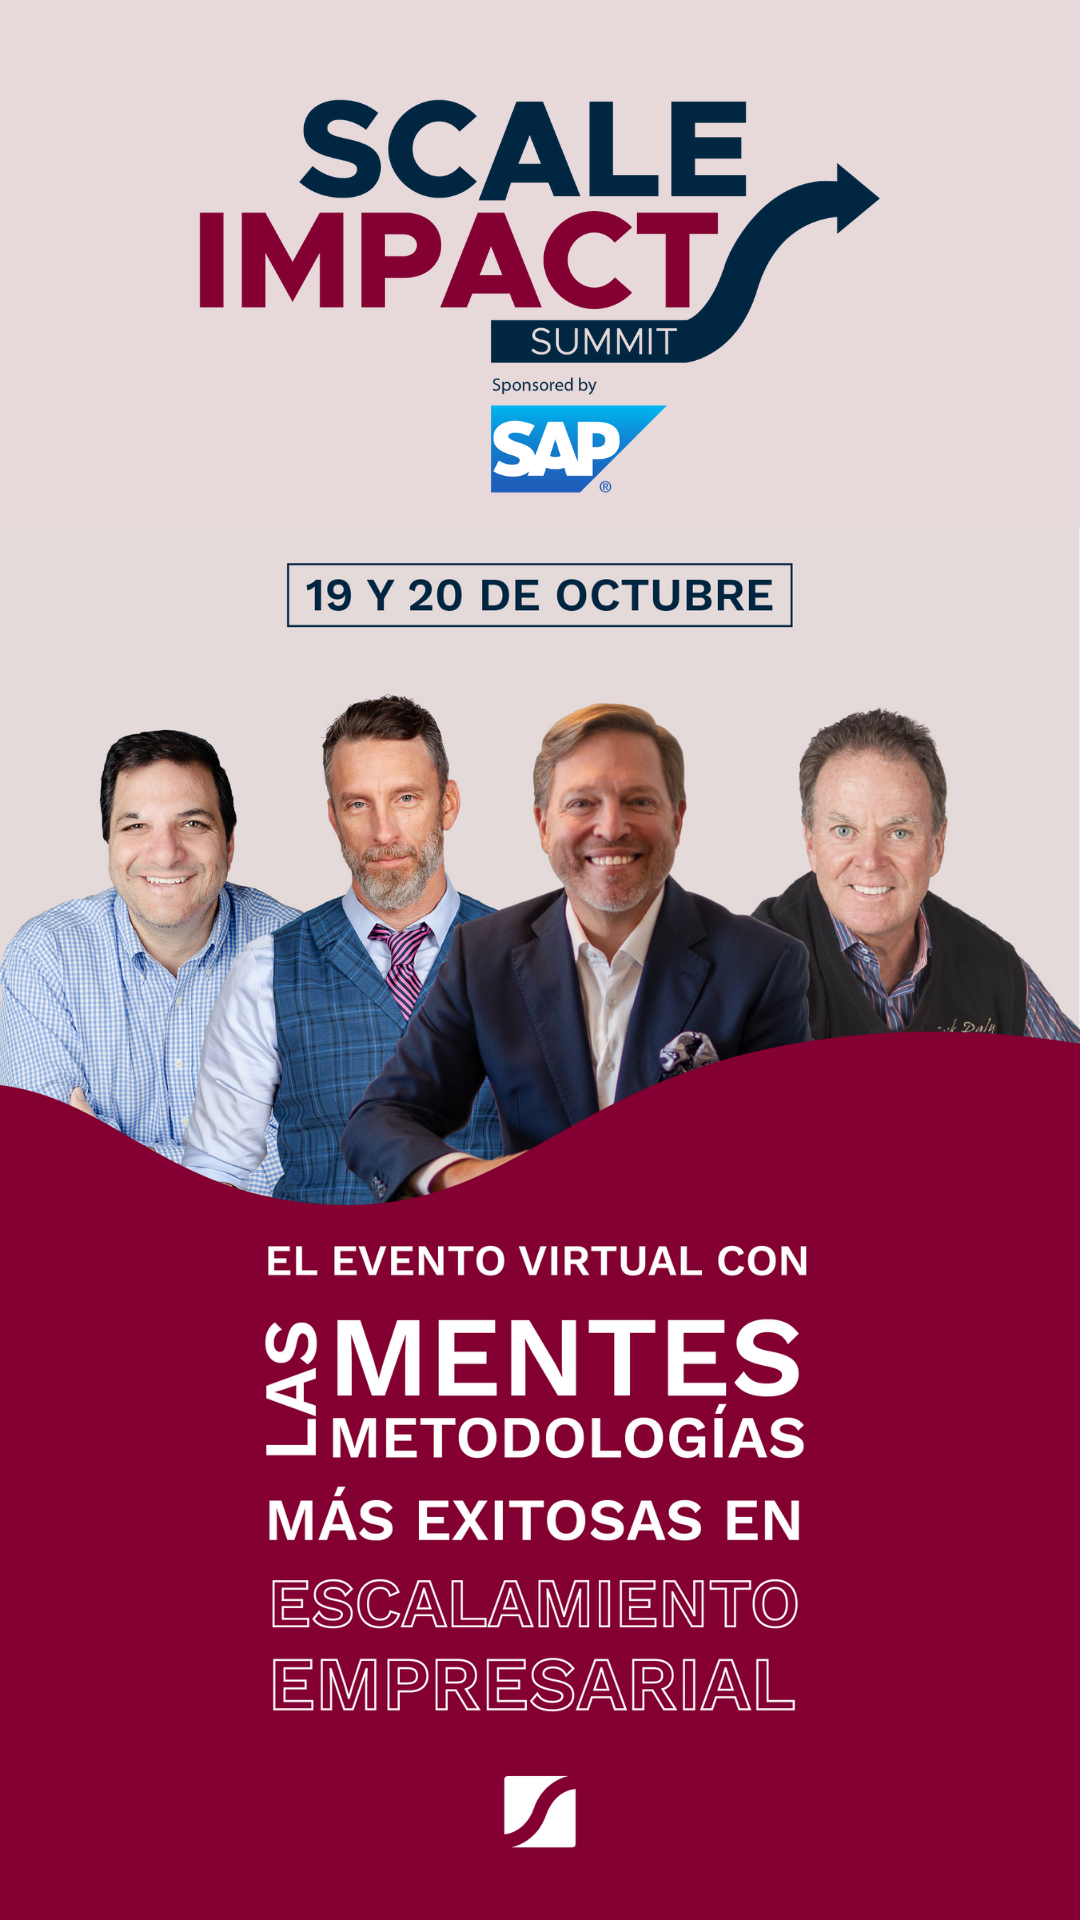 Banner Scale Impact Summit Sponsored by SAP